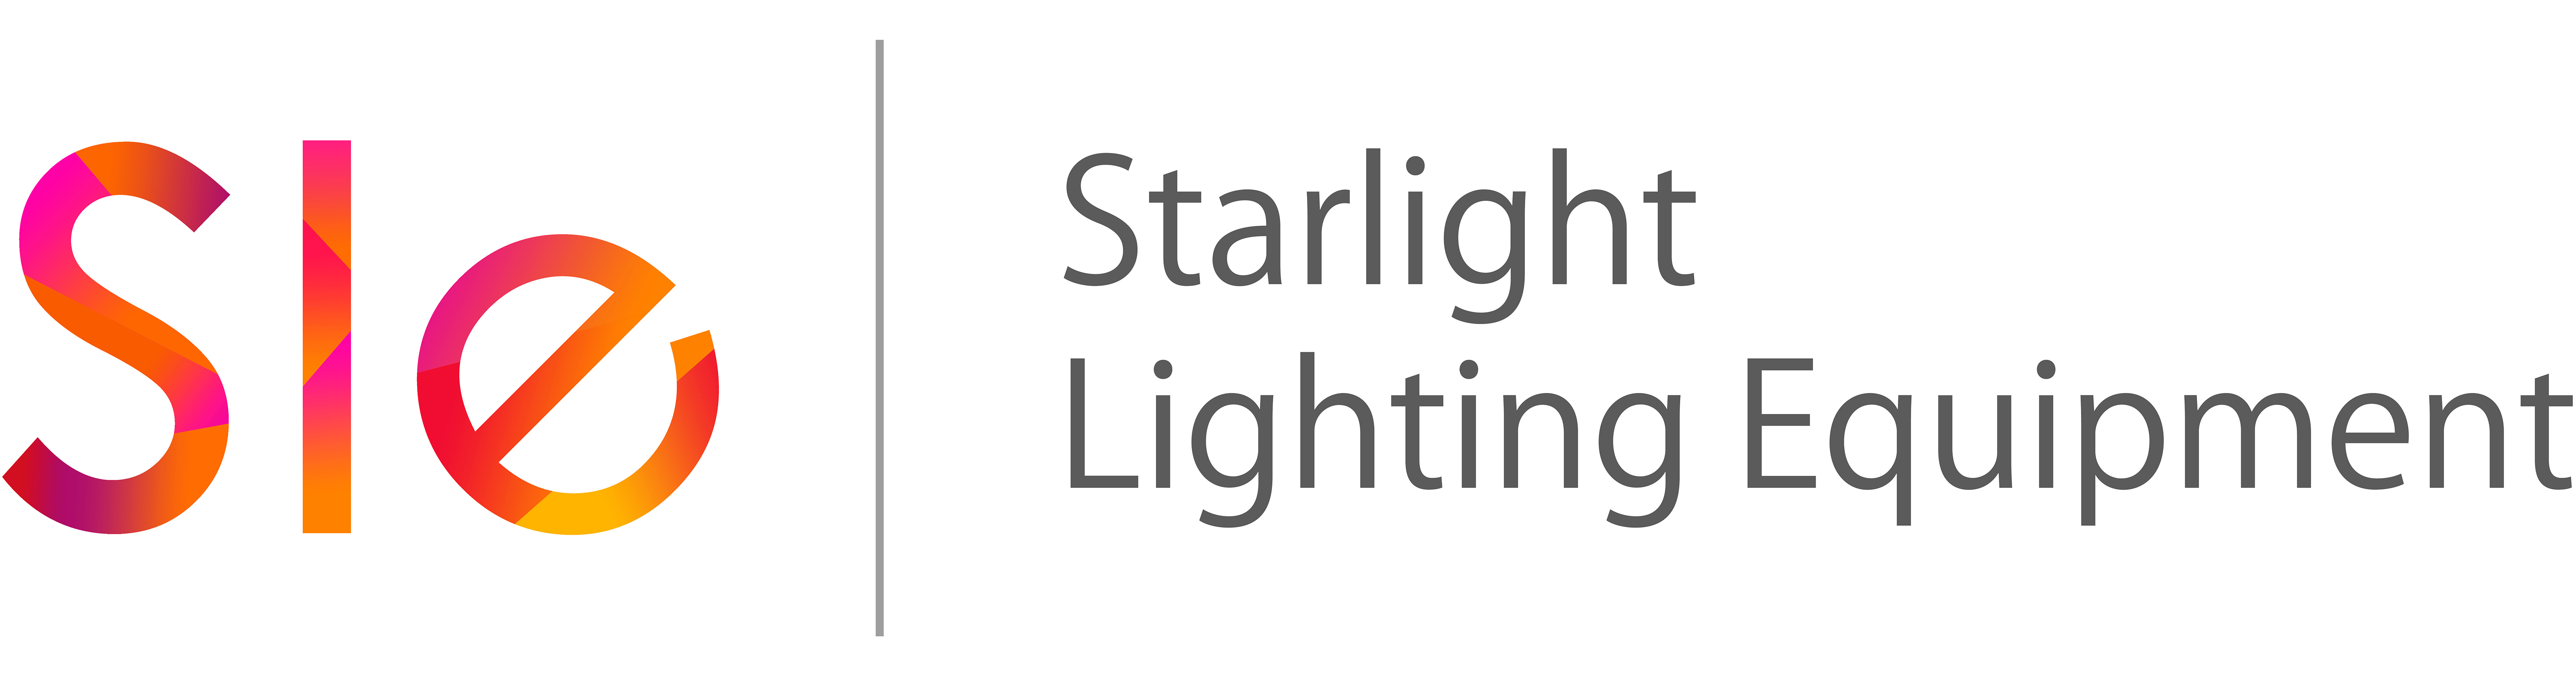 Starlight Lighting Equipment ltd. Logo